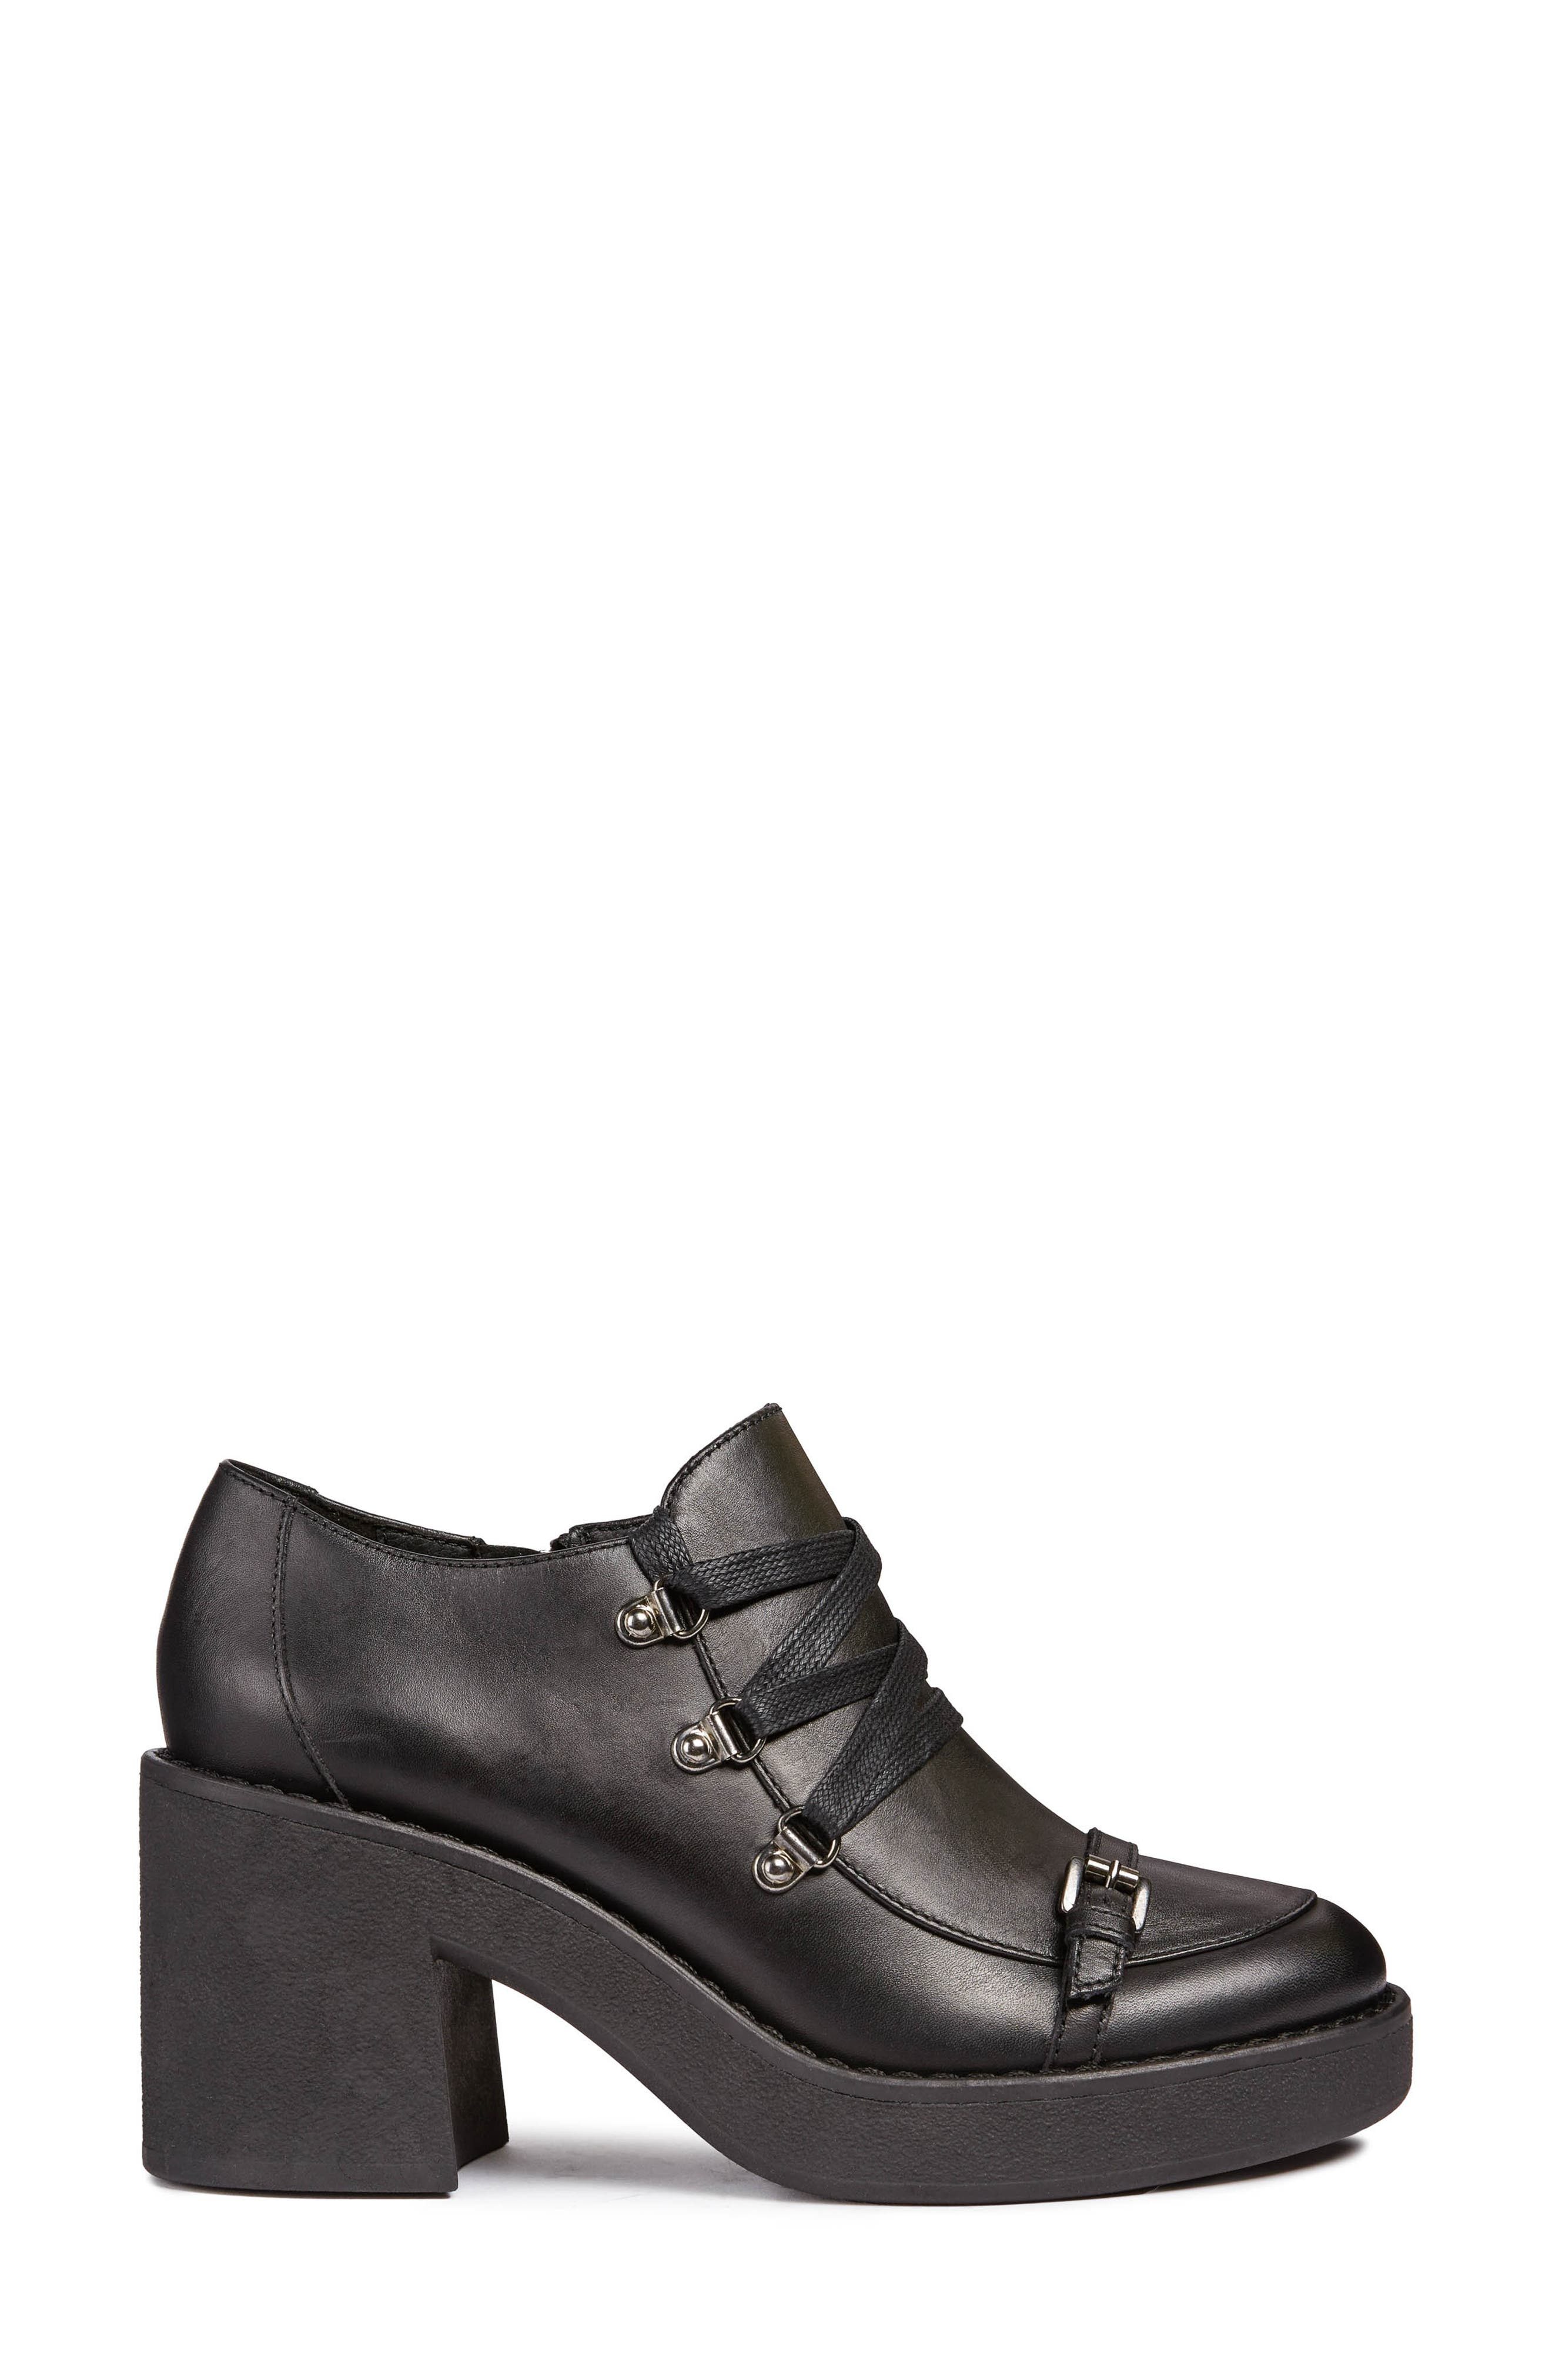 Adrya Bootie,                             Alternate thumbnail 3, color,                             BLACK LEATHER